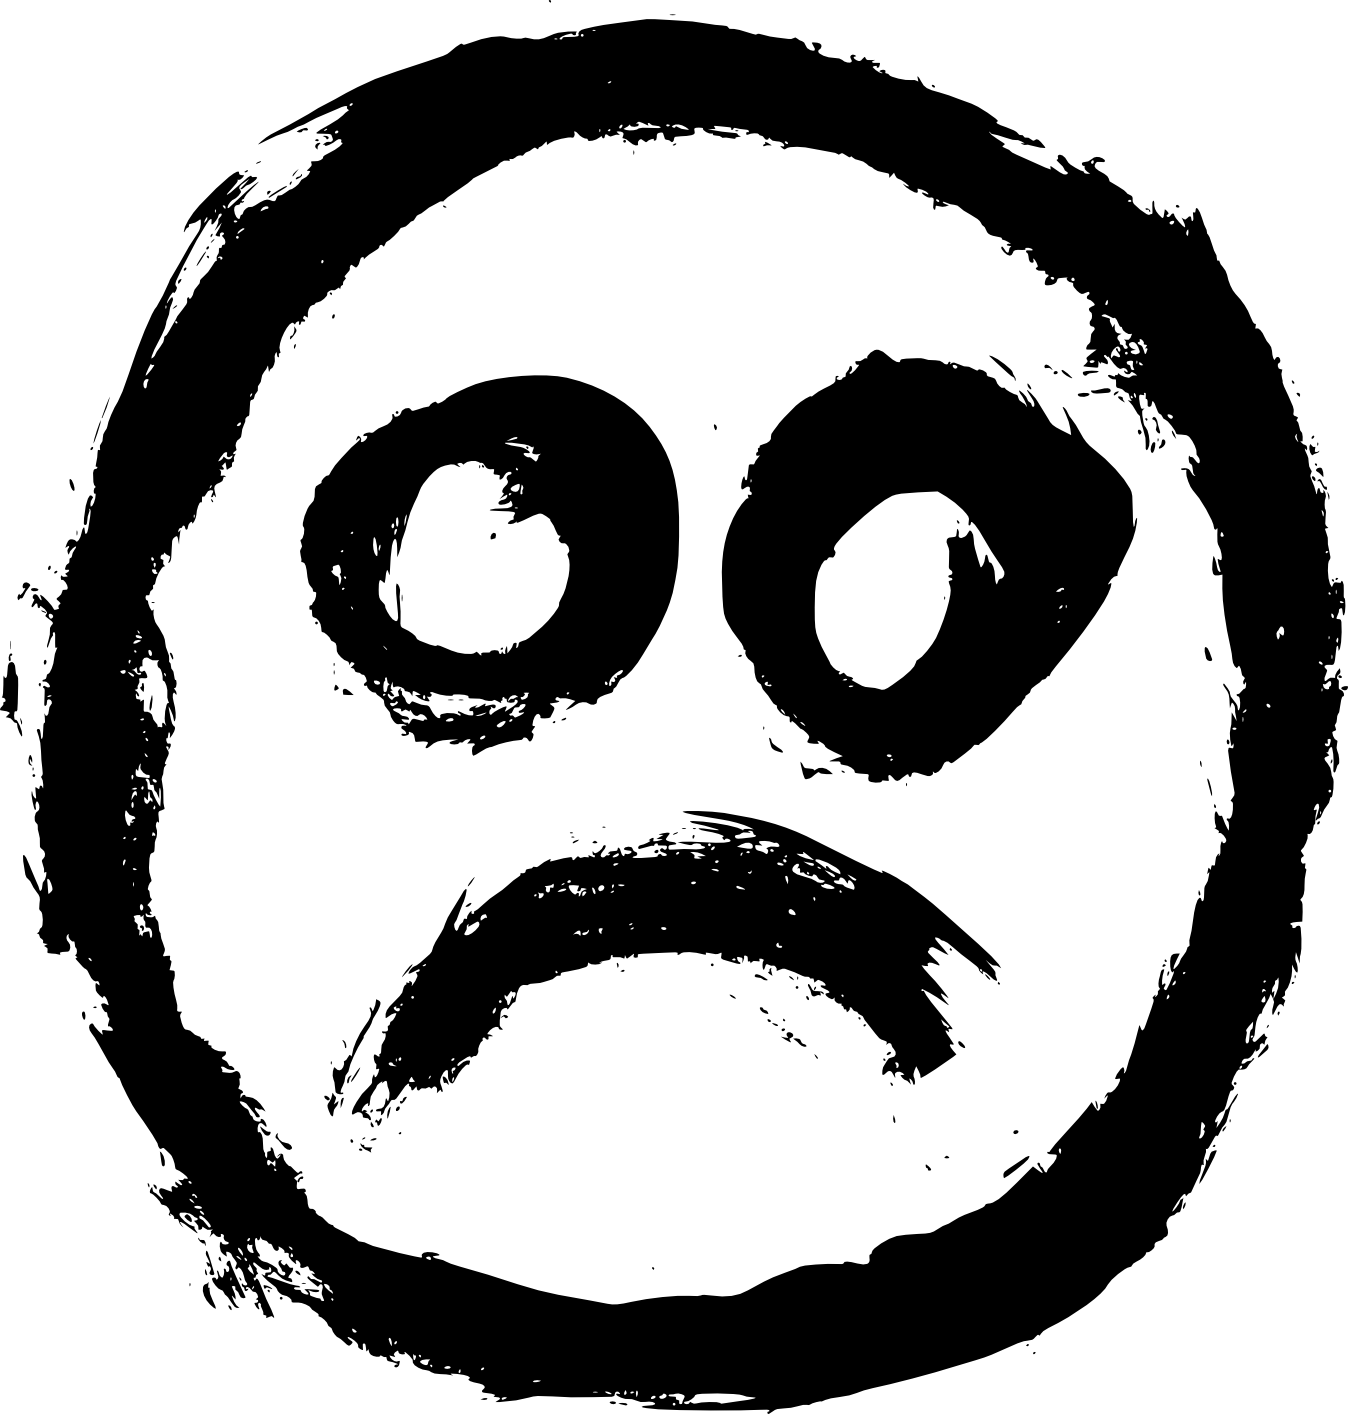 Happy sad png. Grunge smiley icon